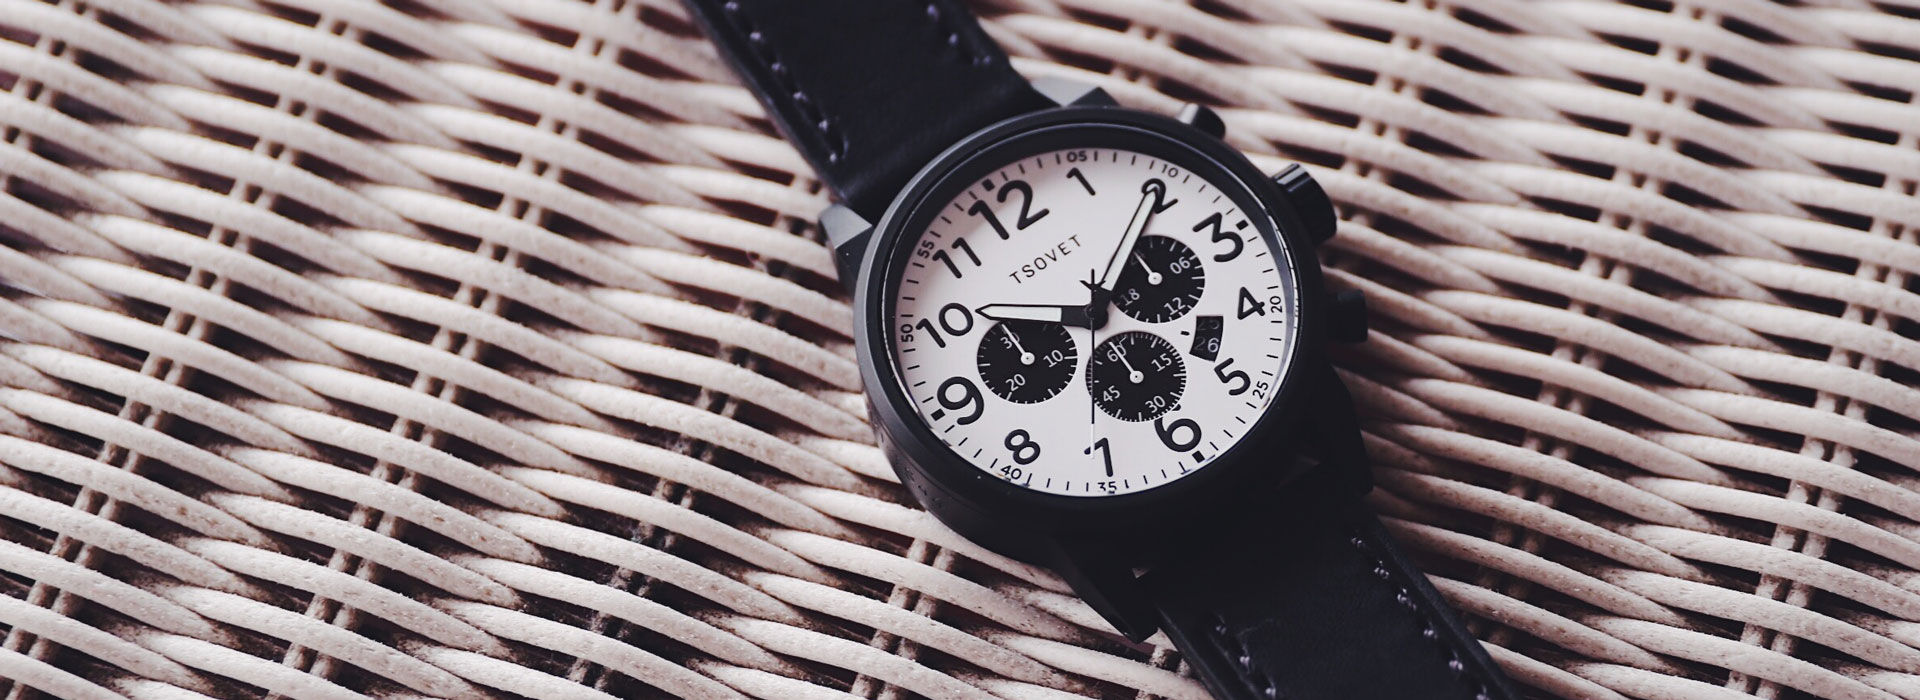 tsovet closeout banner with black and white chronograph